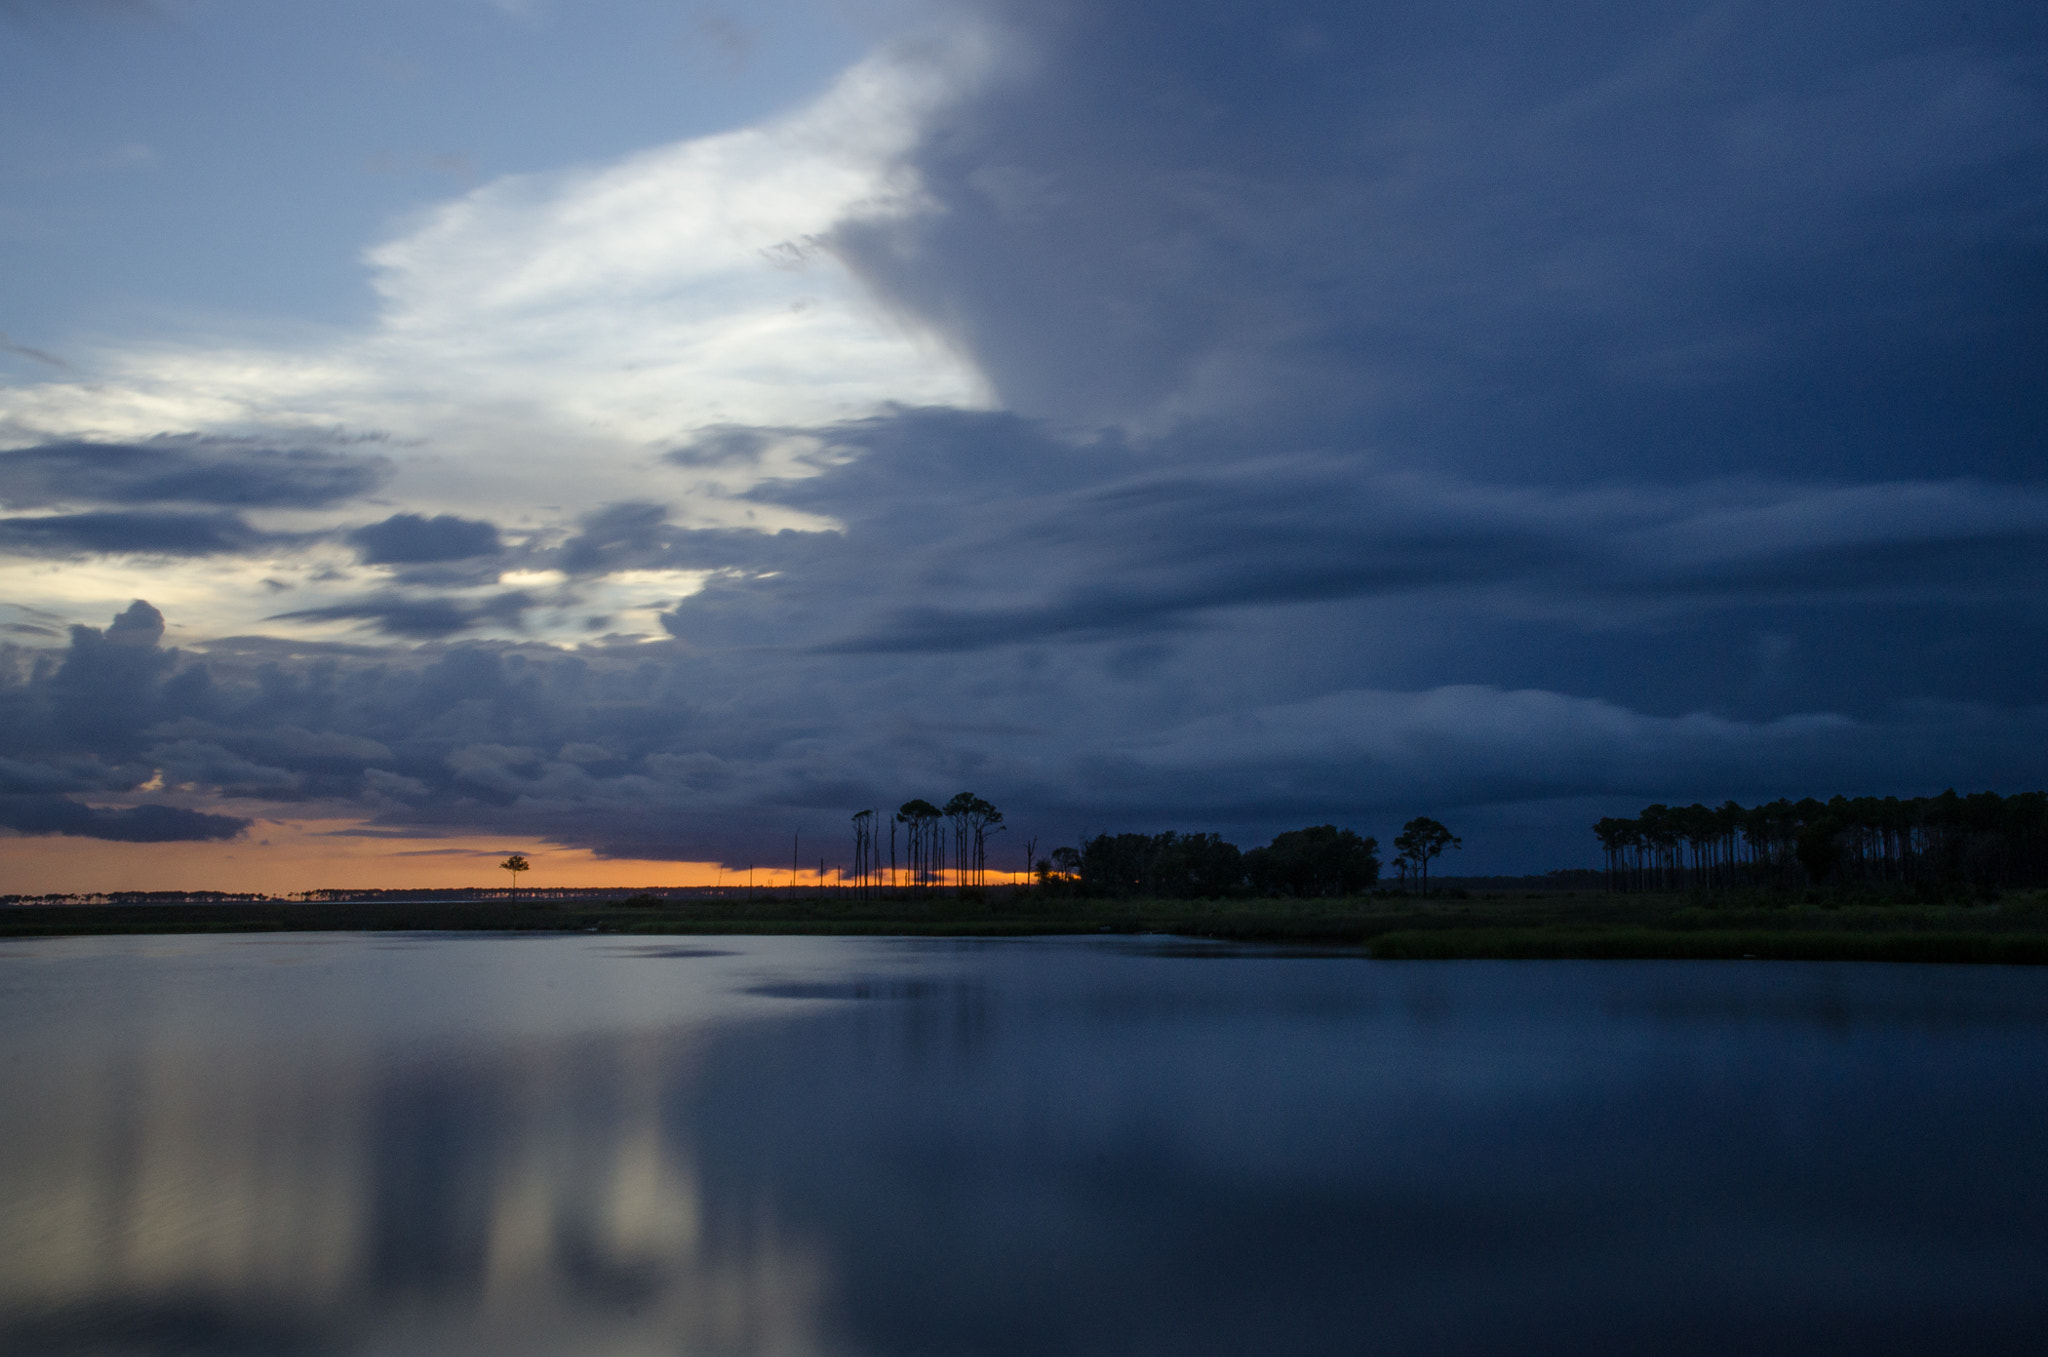 Photograph Storm on the Bayou by Richard Dollison on 500px